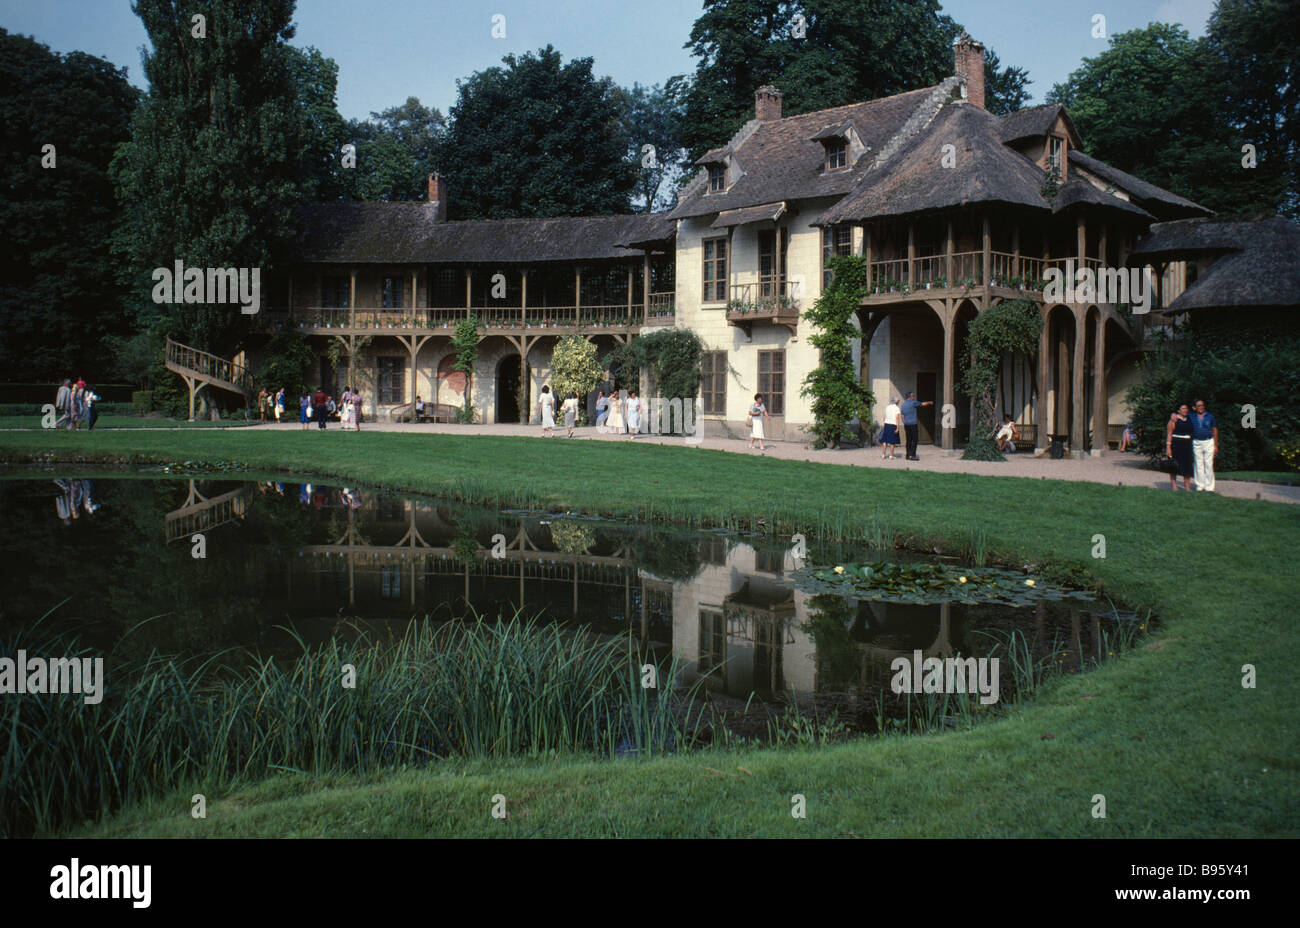 FRANCE Ile de France Paris Versailles Palace The Queens Cottage in the Hamlet exterior with tourist visitors reflected - Stock Image